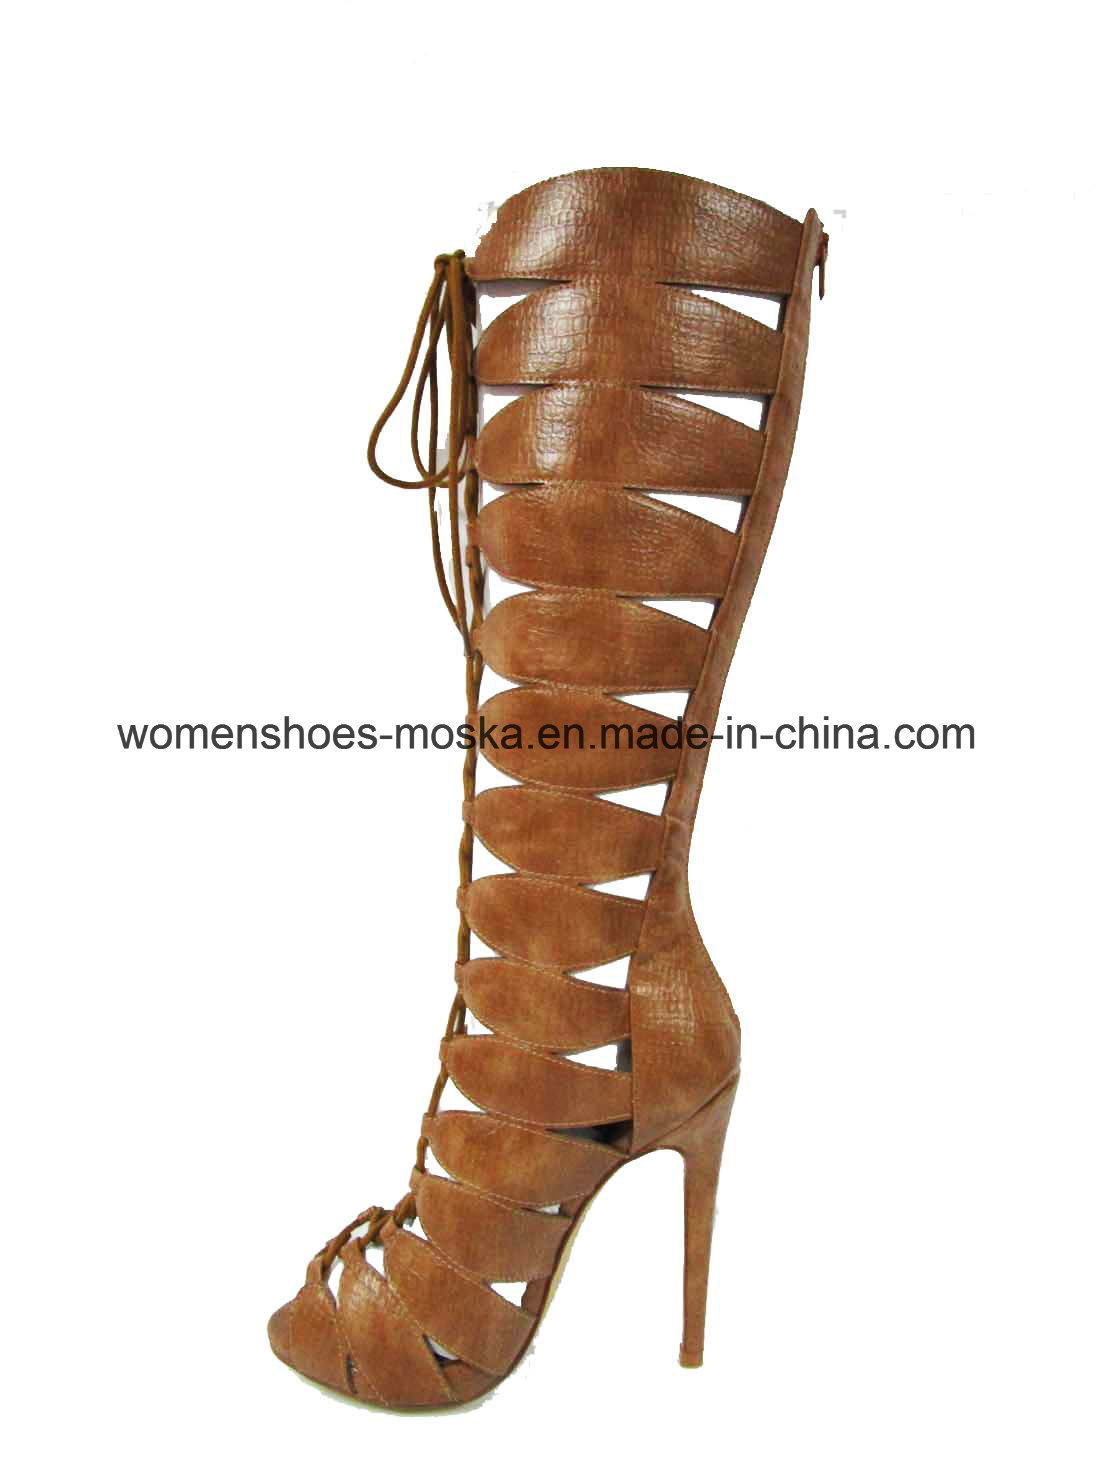 Wholesale Women High Heels Lady Long Boots with Lace up